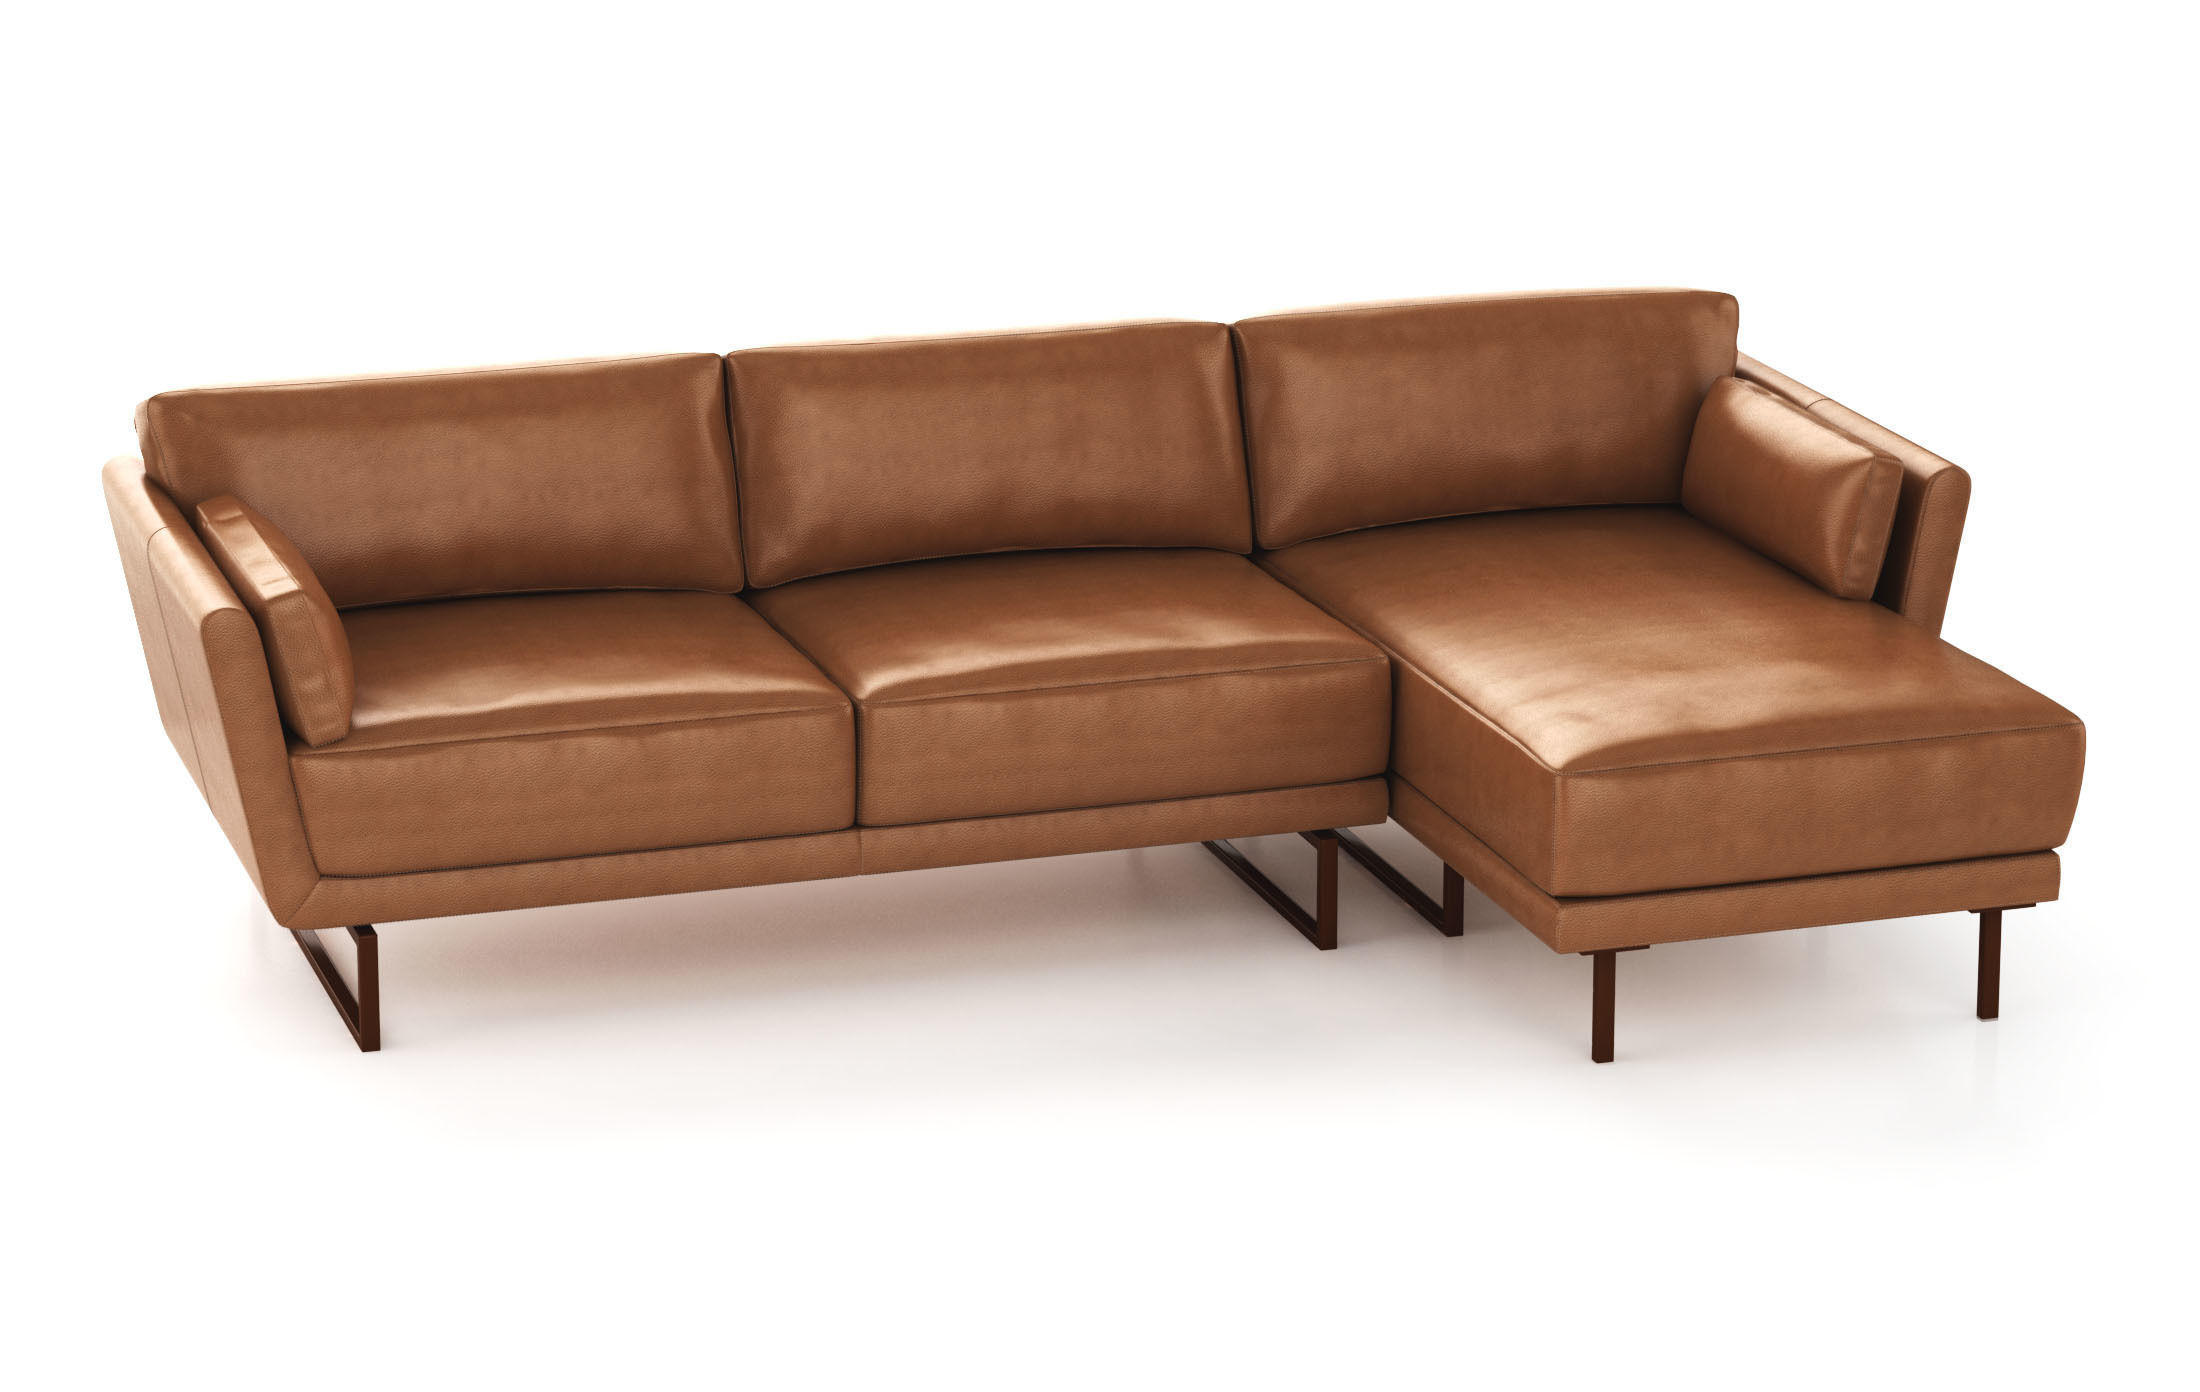 Tan Leather Modular Sofa